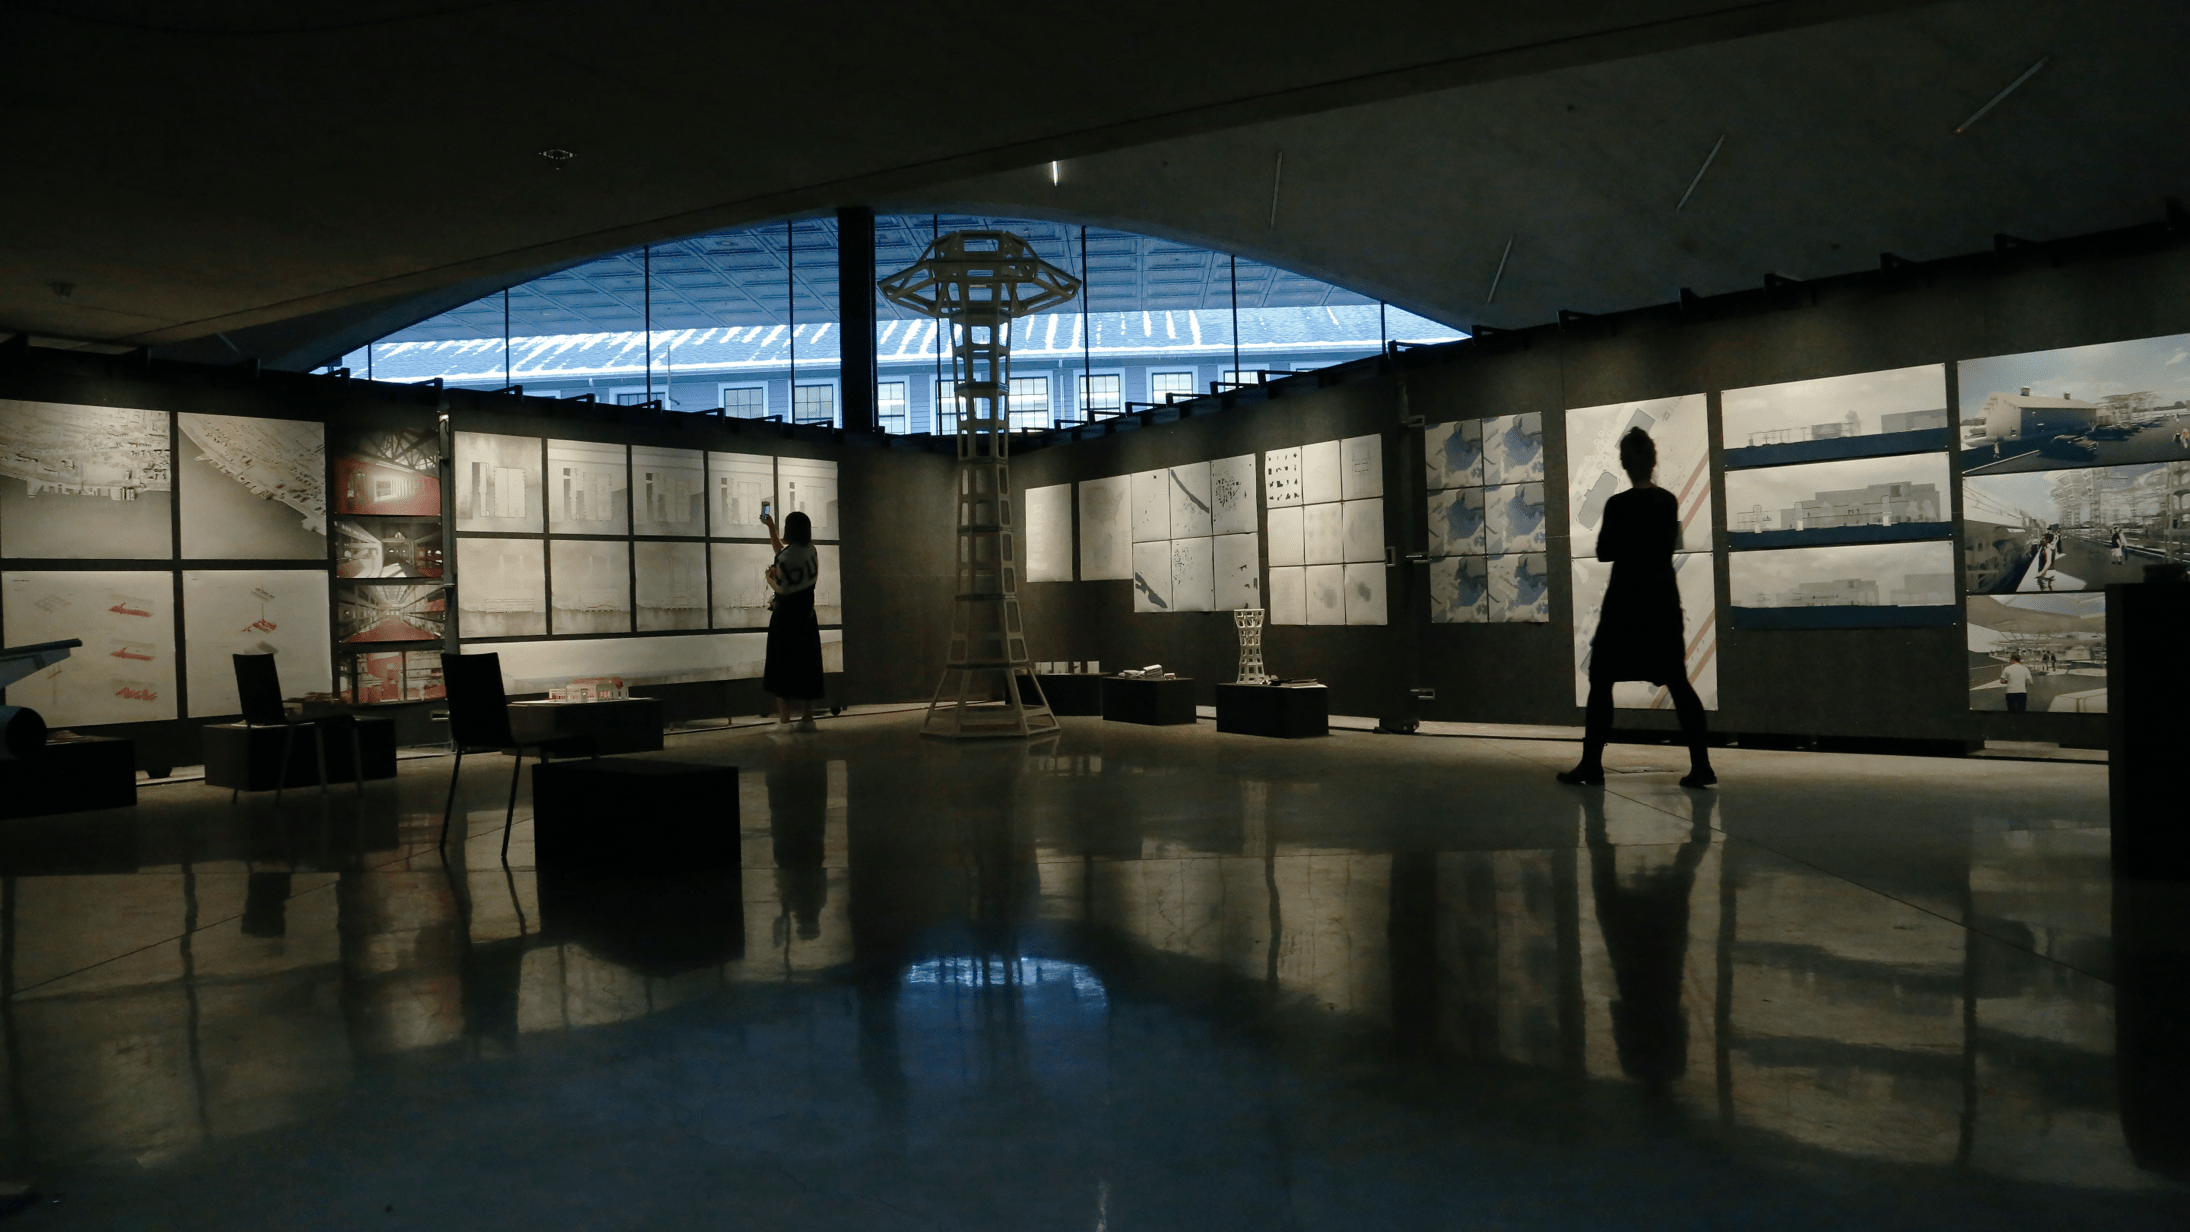 A person standing in a dimly lit room with a ceiling cutout.